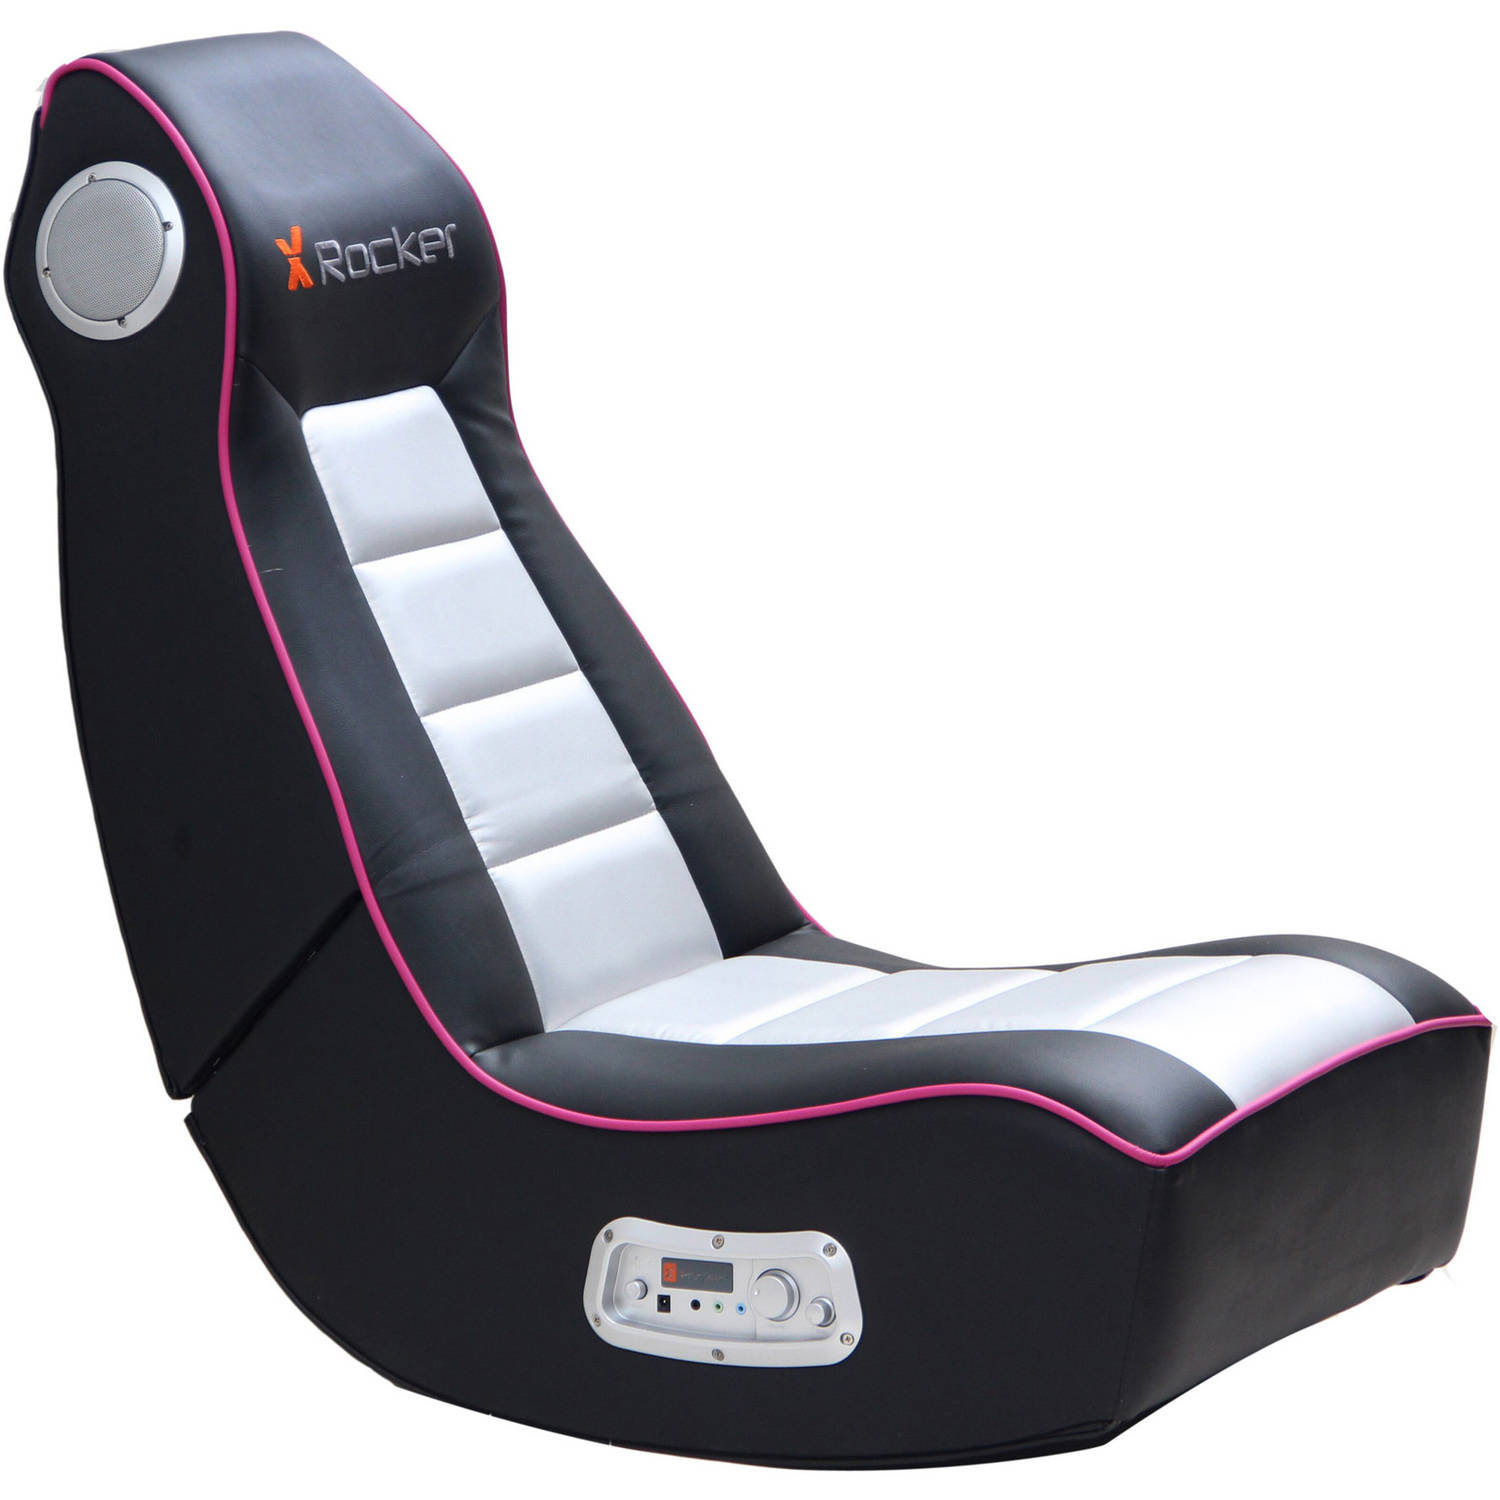 Gaming Sessel Ebay Details About X Rocker 2 1 Wired Audio Gaming Chair Black Pink